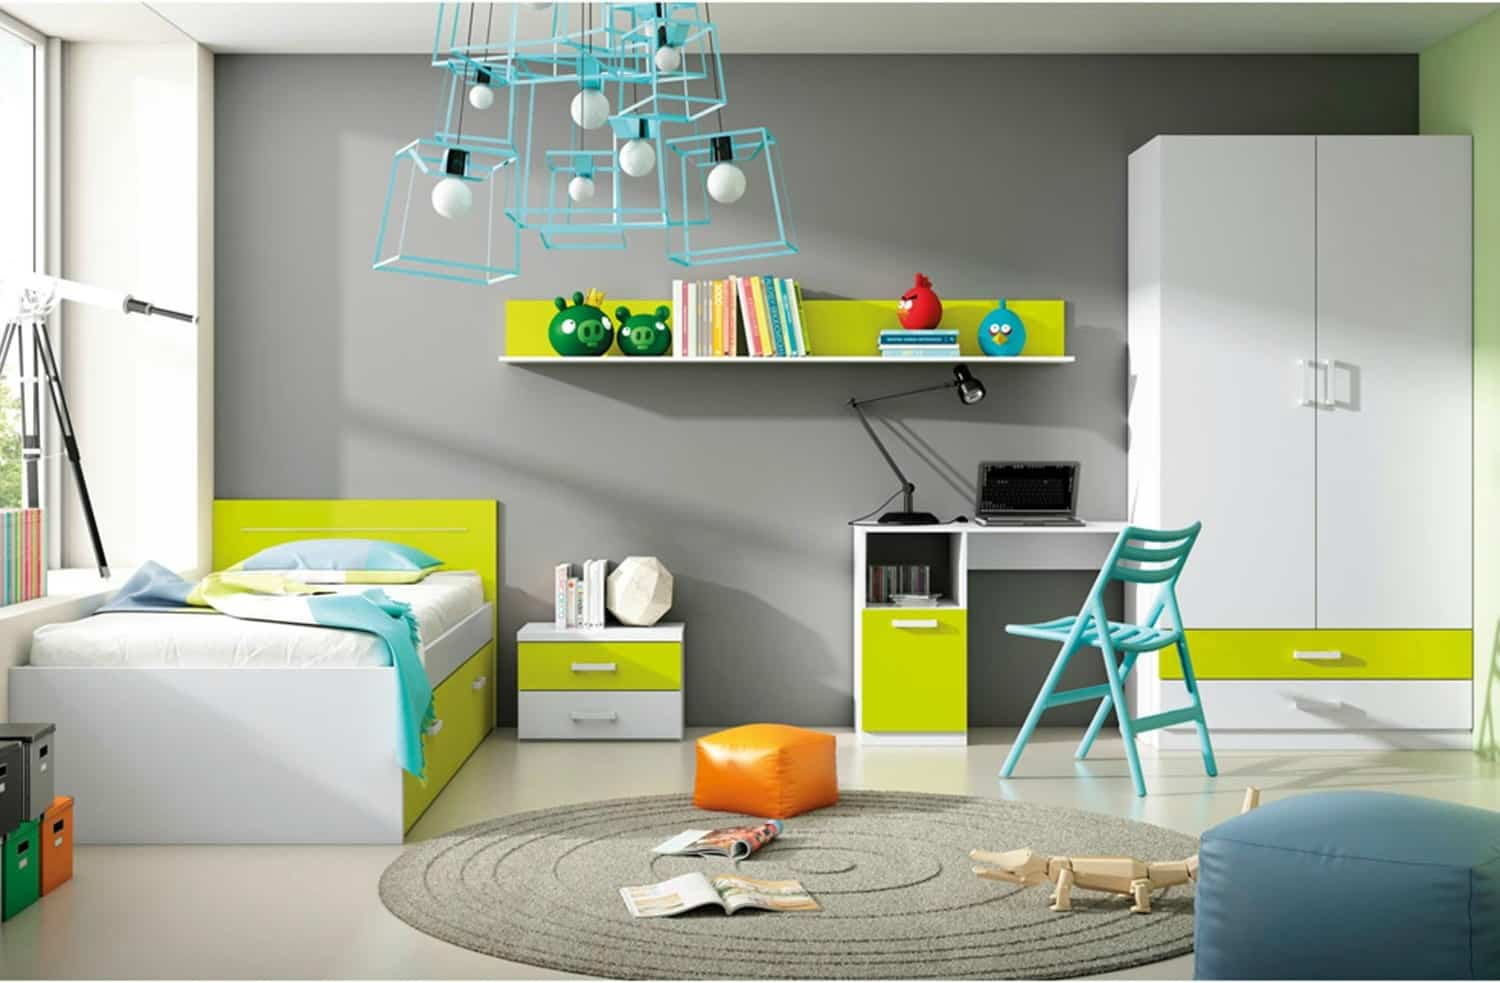 D nde comprar muebles low cost online for Muebles low cost online